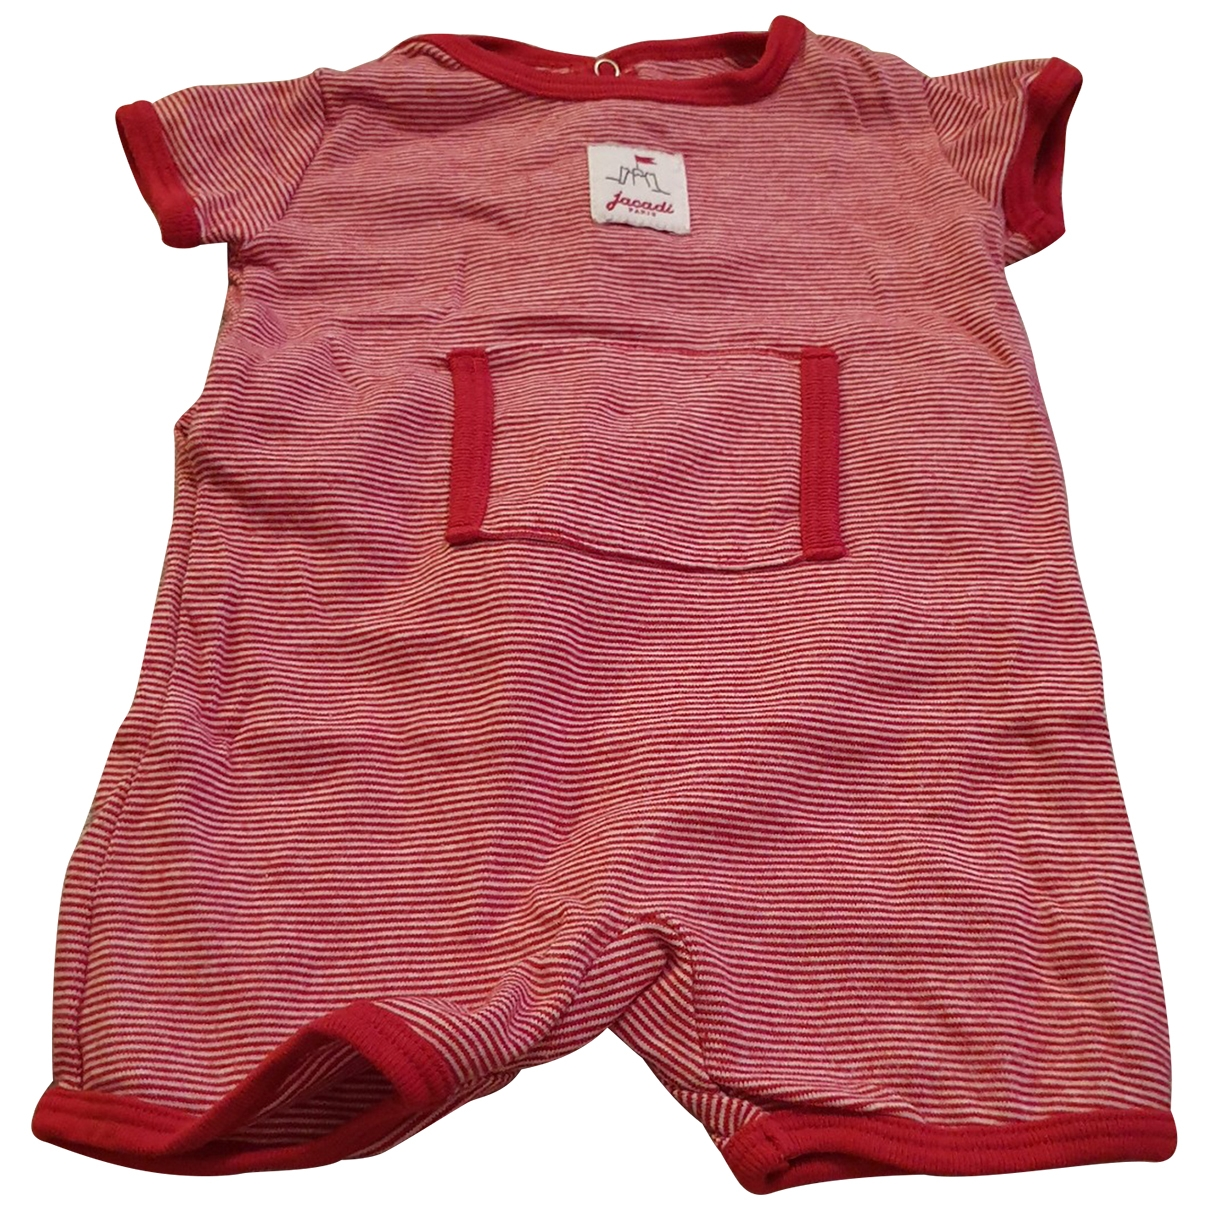 Jacadi \N Red Cotton Outfits for Kids 3 months - up to 60cm FR